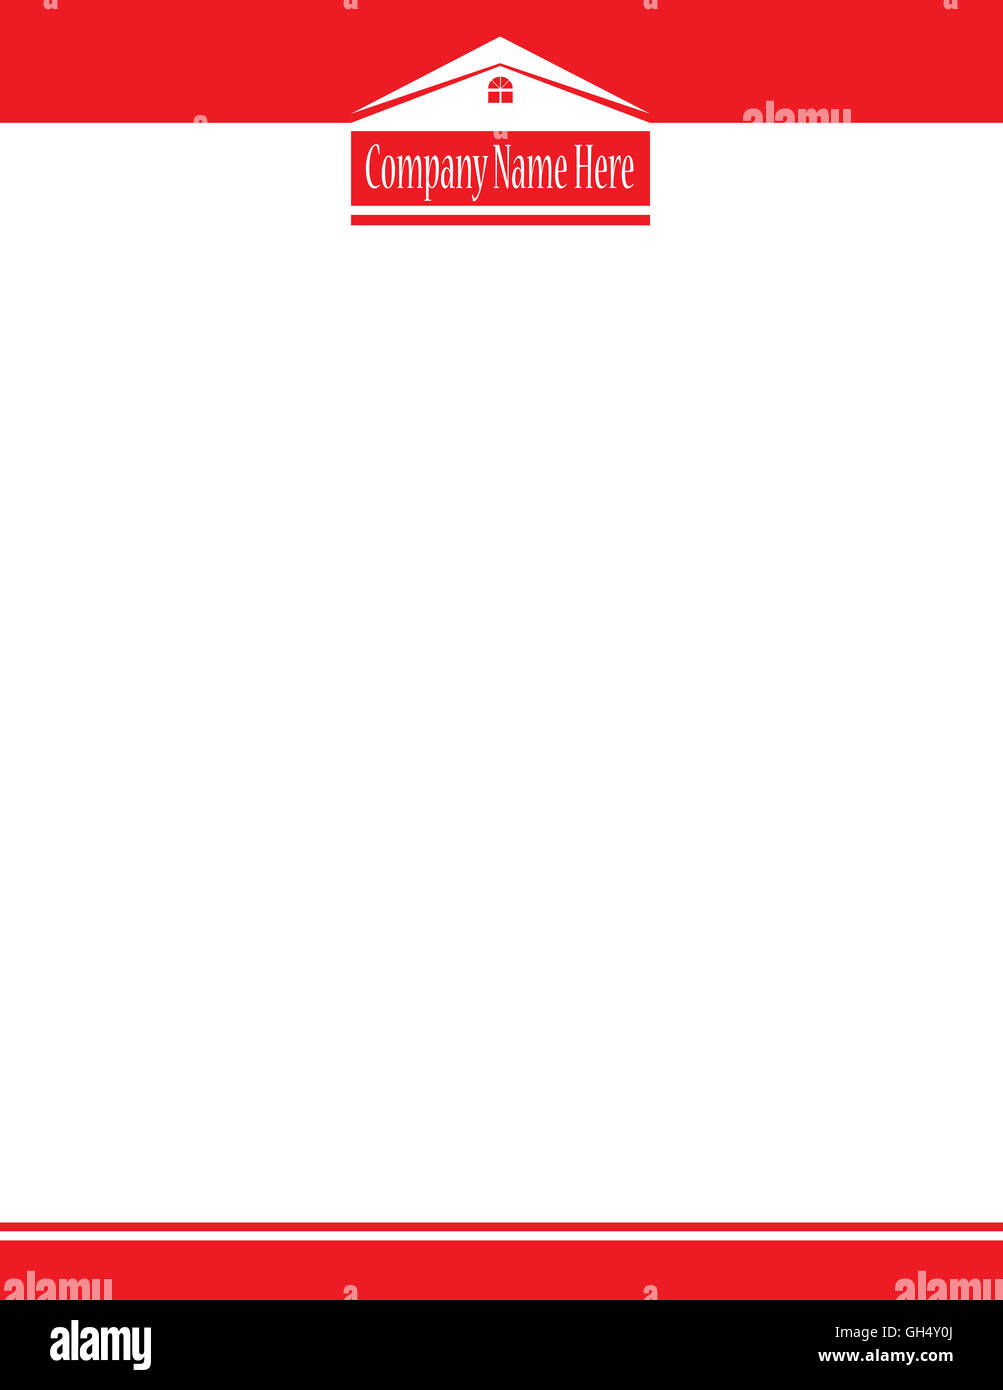 Red House Real Estate Logo Letterhead Template - Stock Image